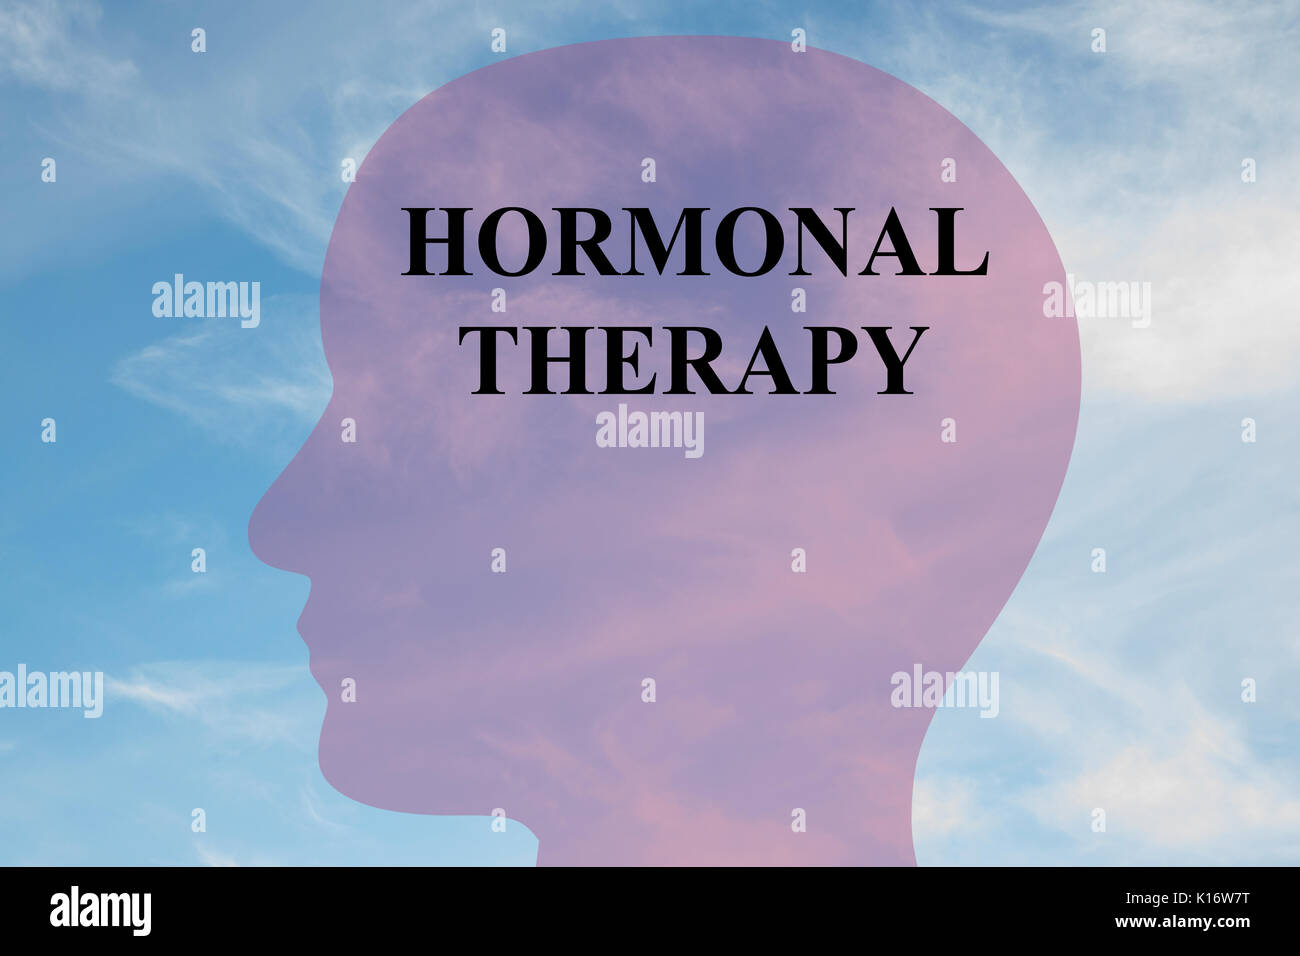 Render illustration of 'HORMONAL THERAPY' title on head silhouette, with cloudy sky as a background. - Stock Image